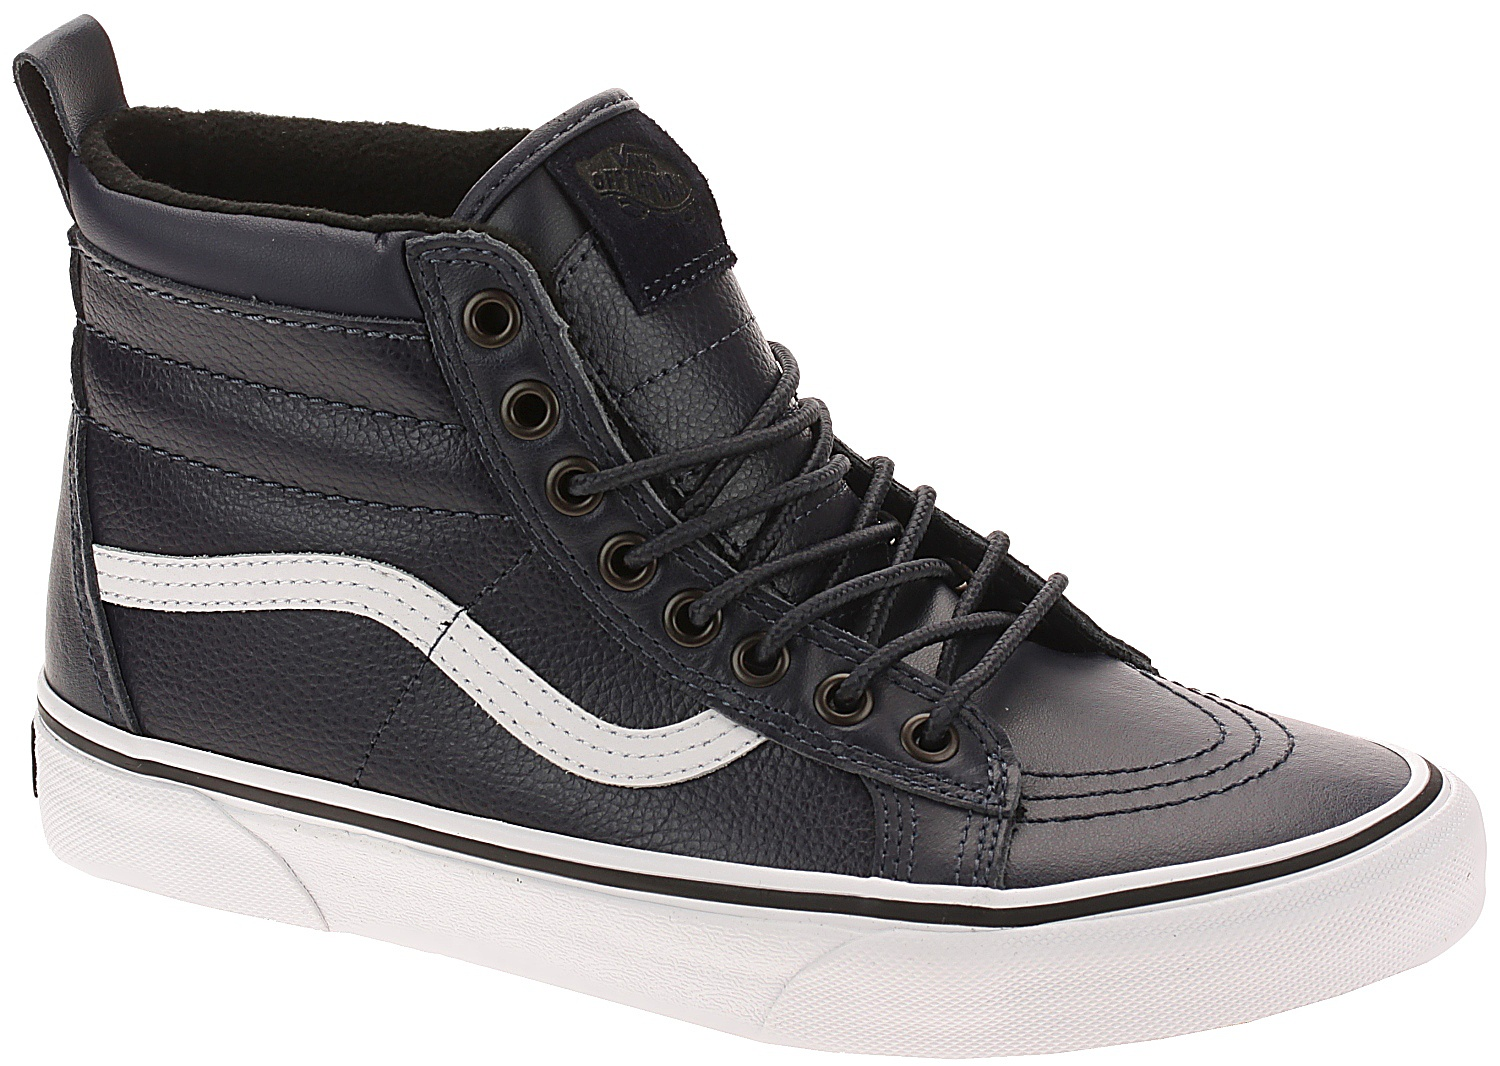 boty Vans Sk8-Hi MTE - MTE Sky Captain Leather 45 6f970553c75